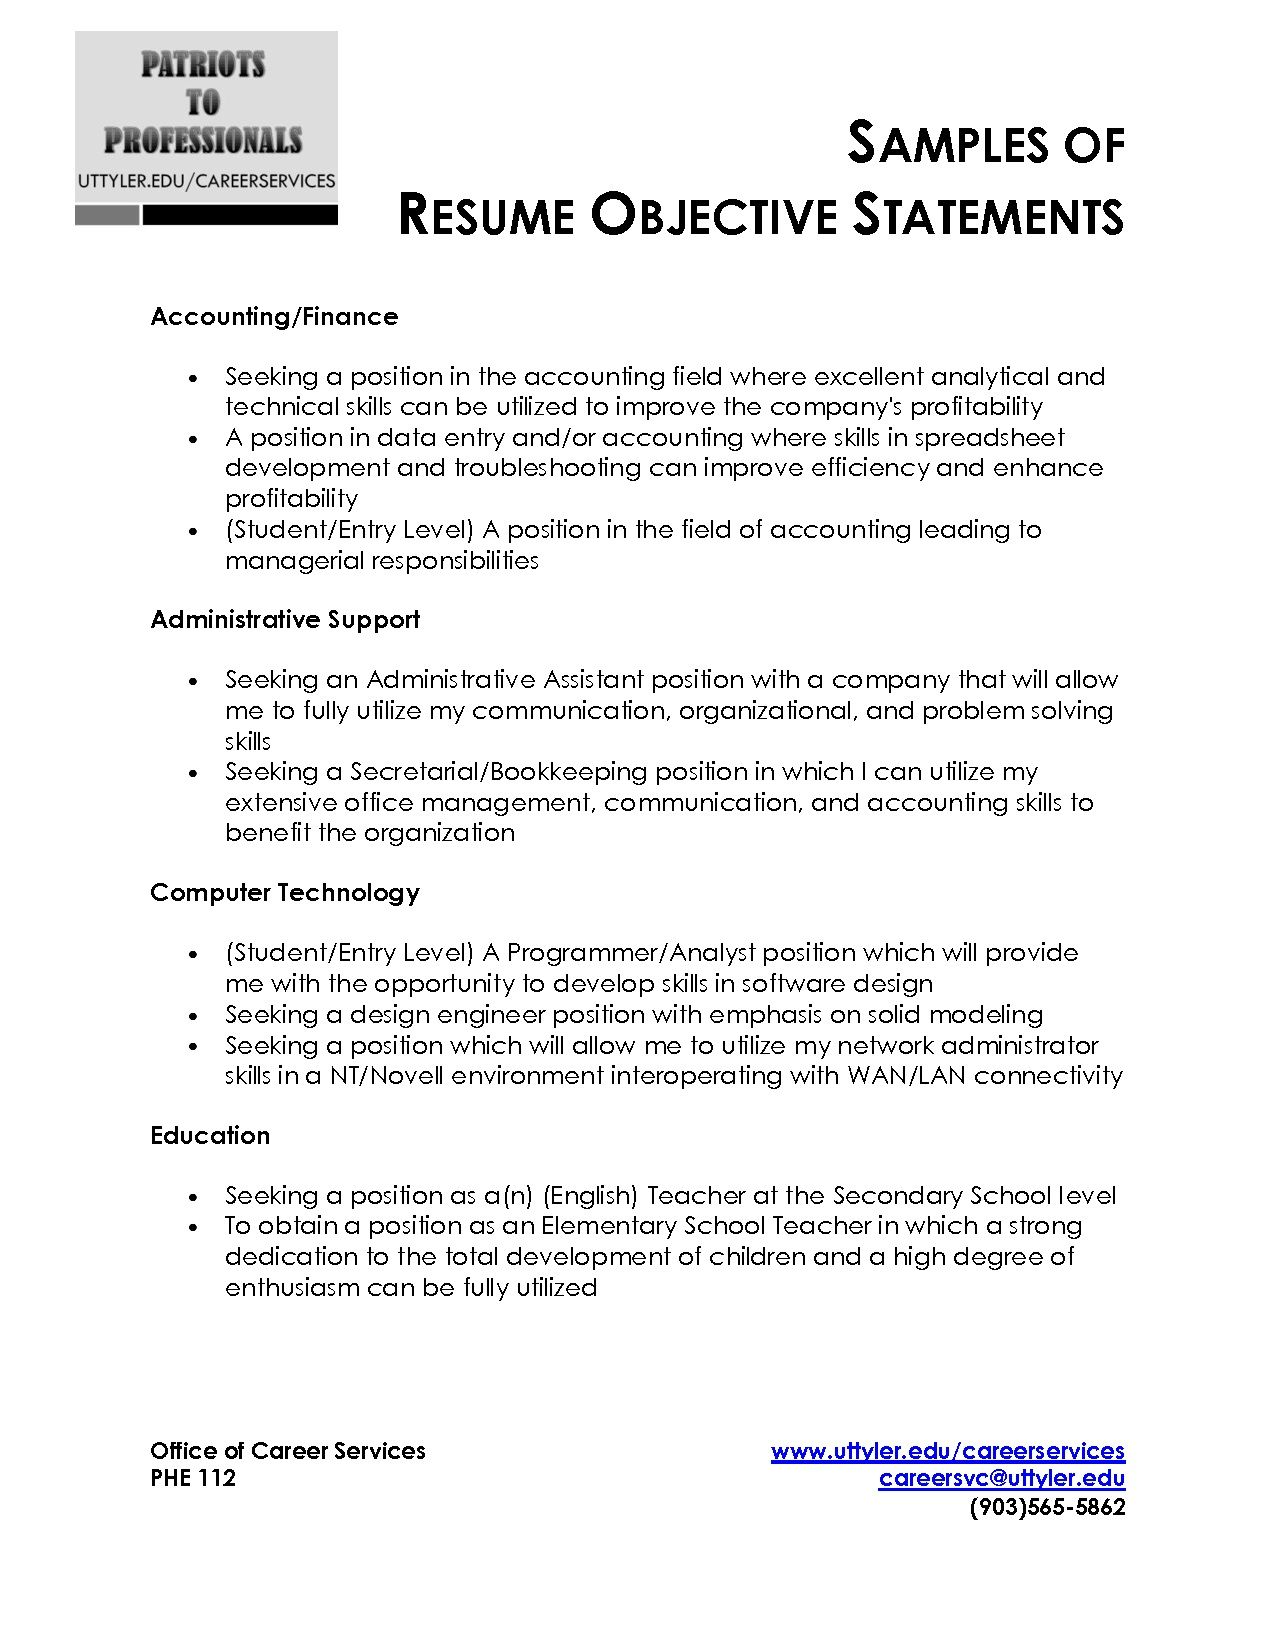 Education On Resume Examples Sample Resume Objective Statement  Adsbygoogle  Window